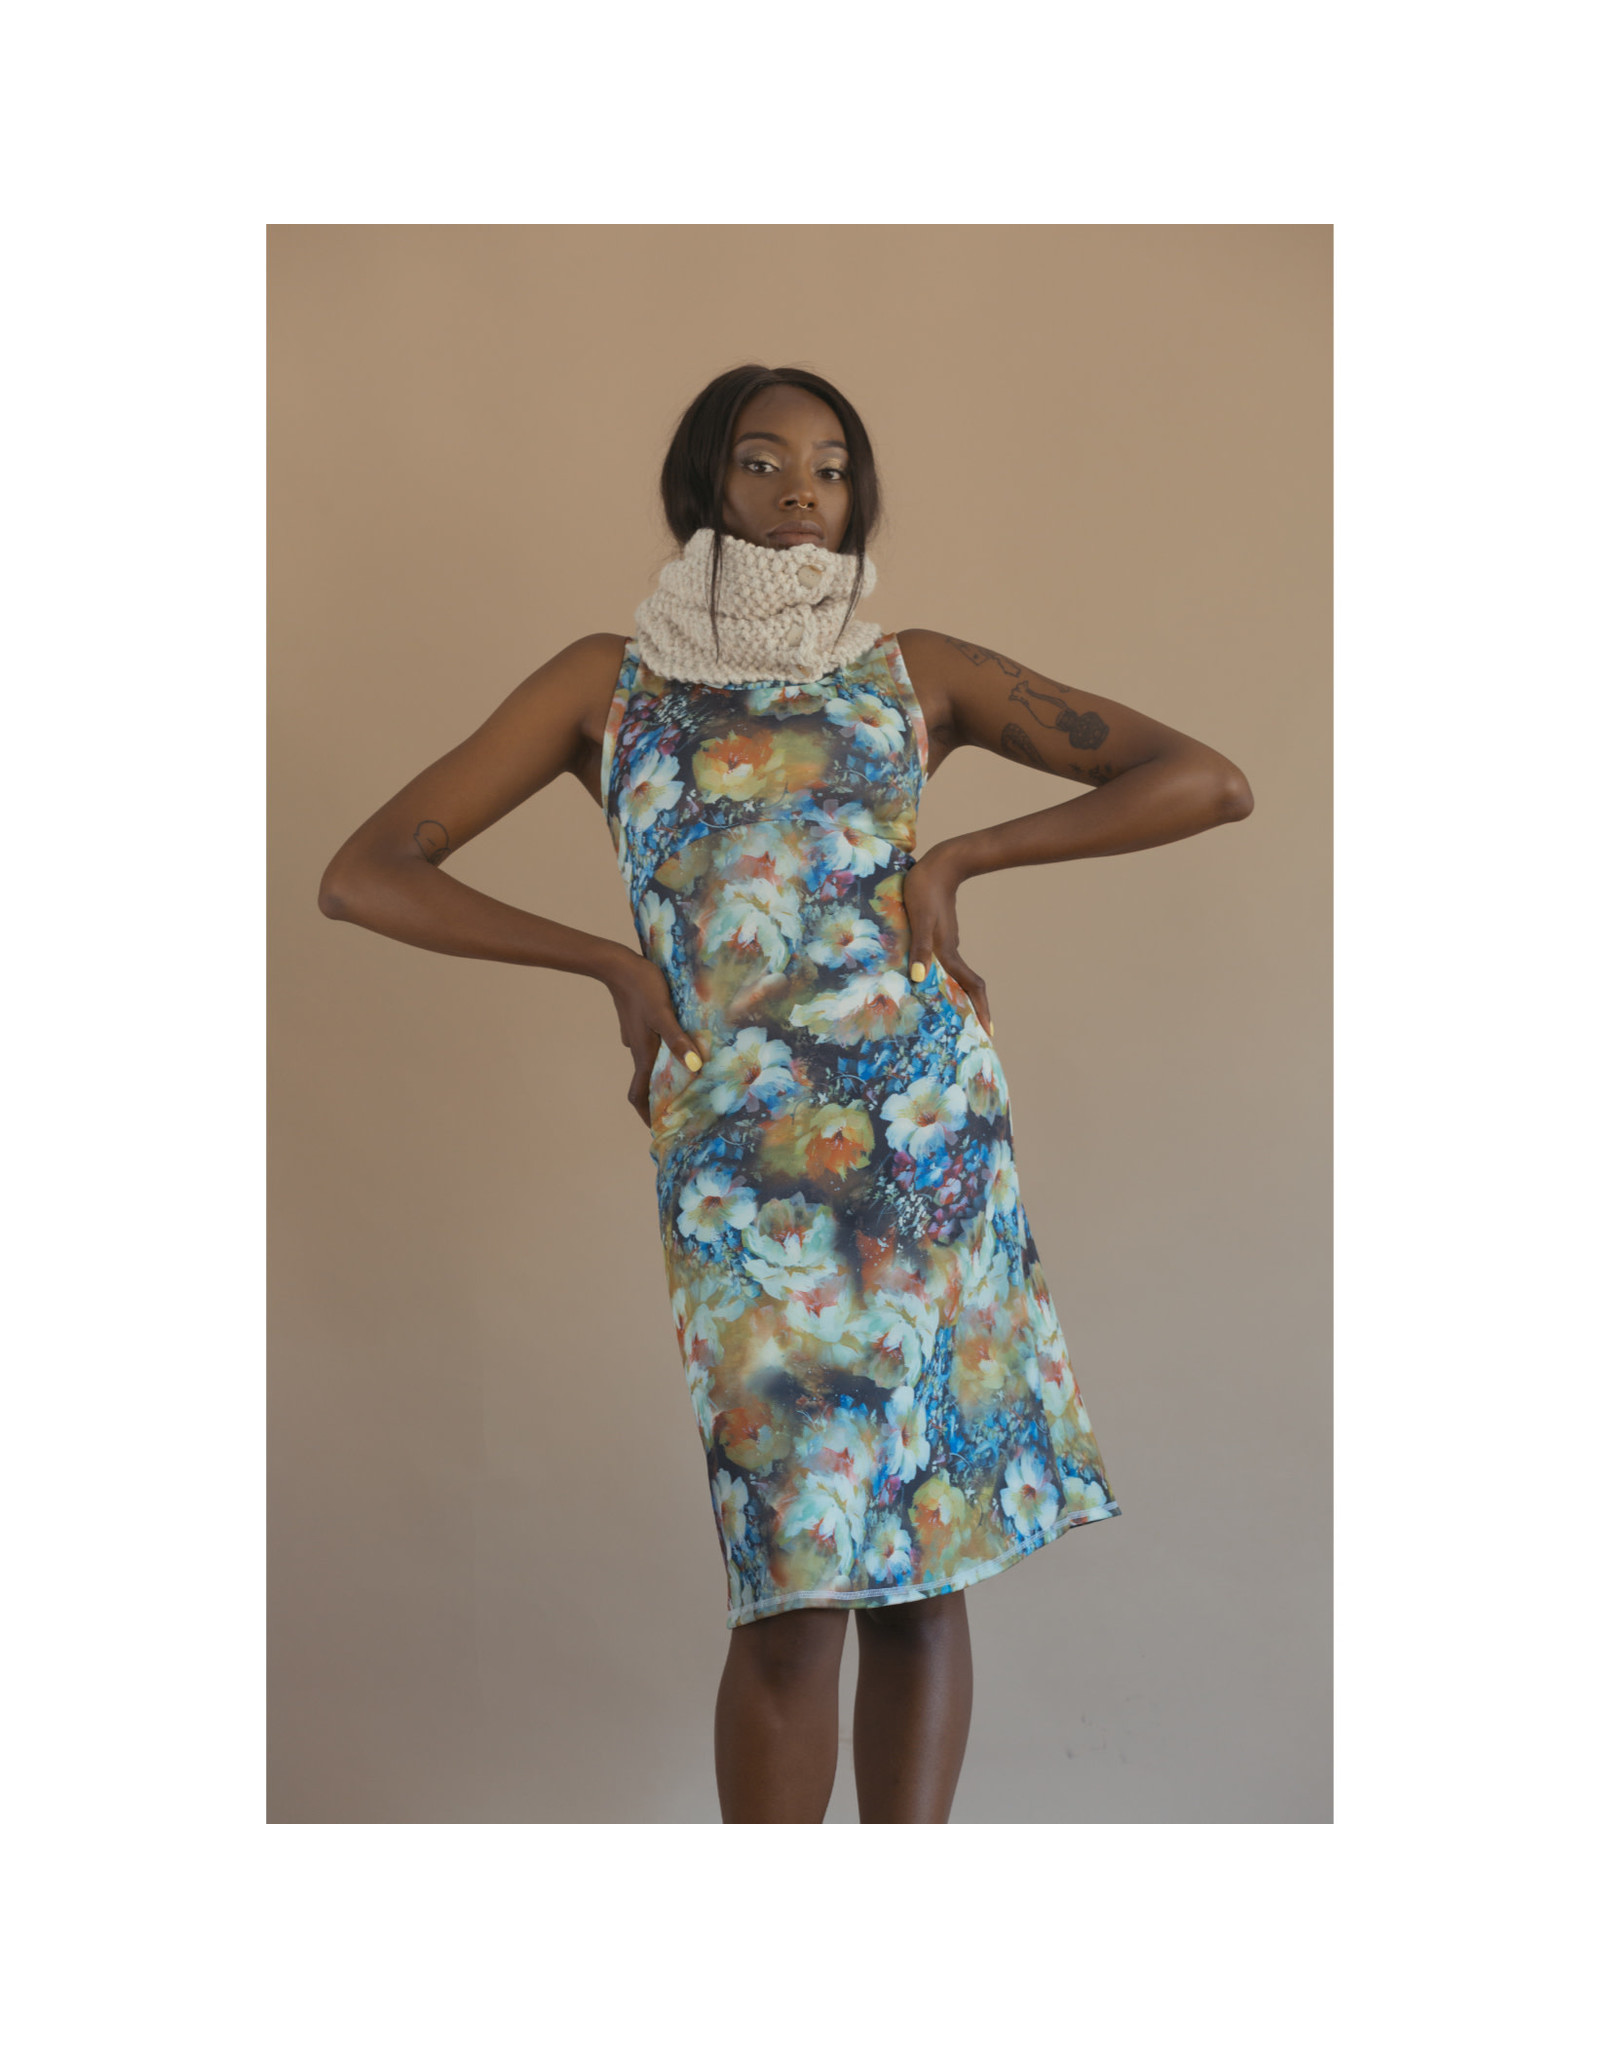 Devil May Wear Painted Lady Dress, 95% polyester 5% spandex